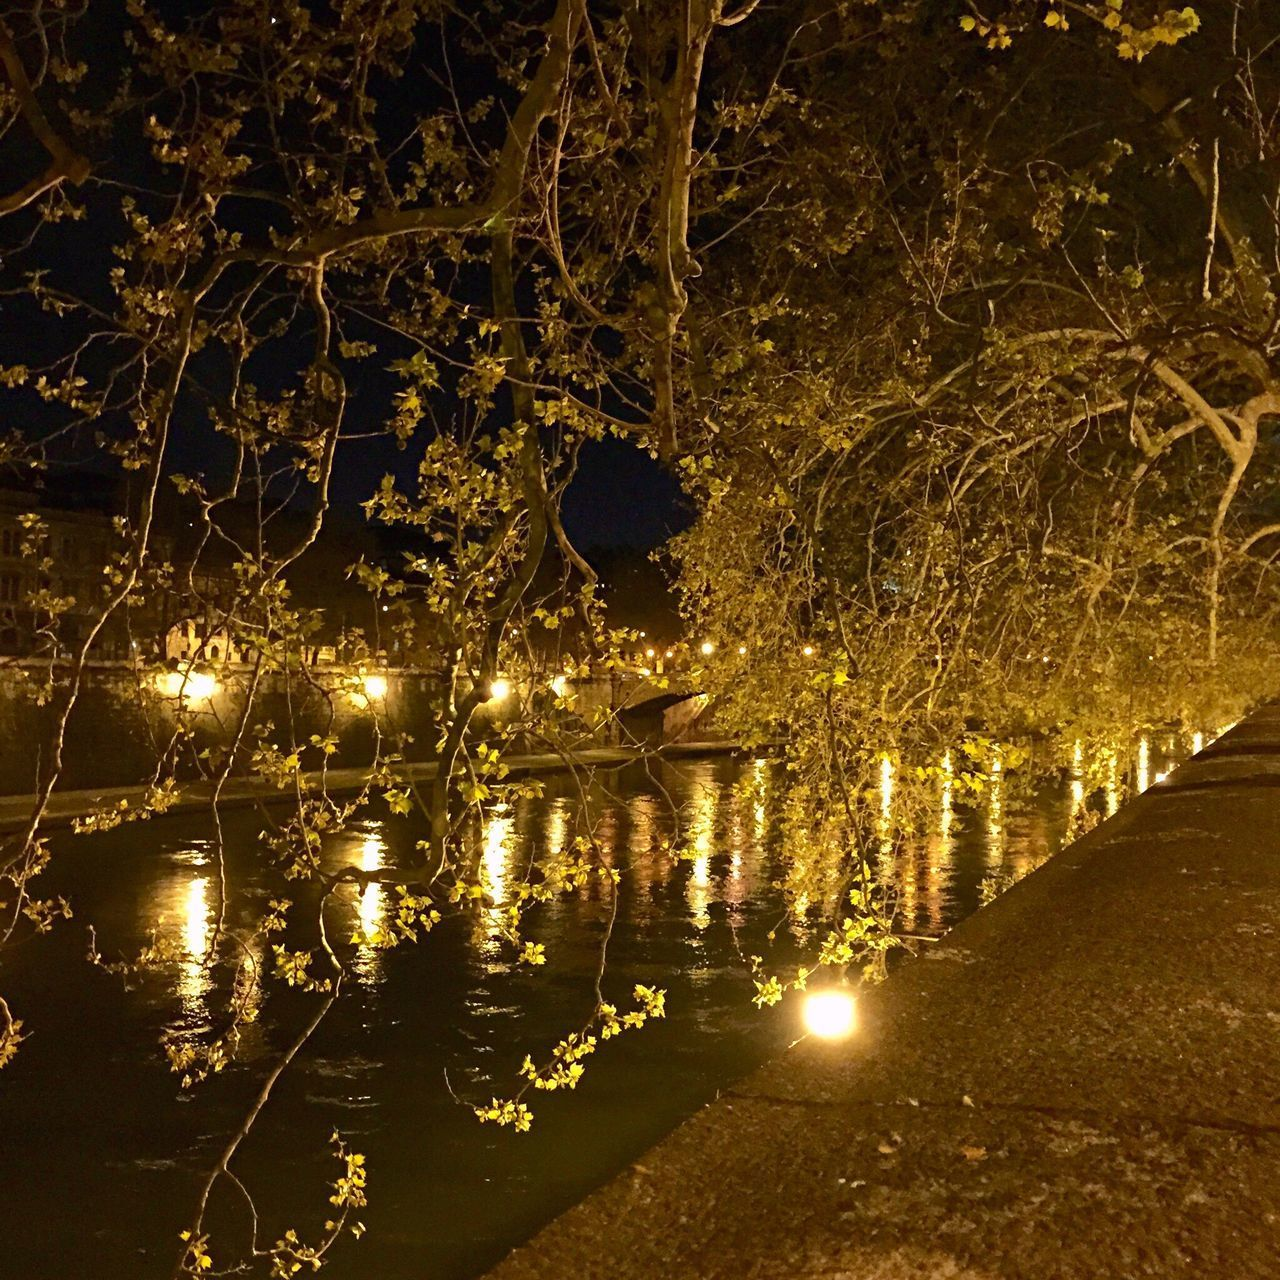 illuminated, night, tree, water, reflection, nature, no people, lake, plant, lighting equipment, waterfront, tranquility, branch, outdoors, glowing, beauty in nature, celebration, transportation, light